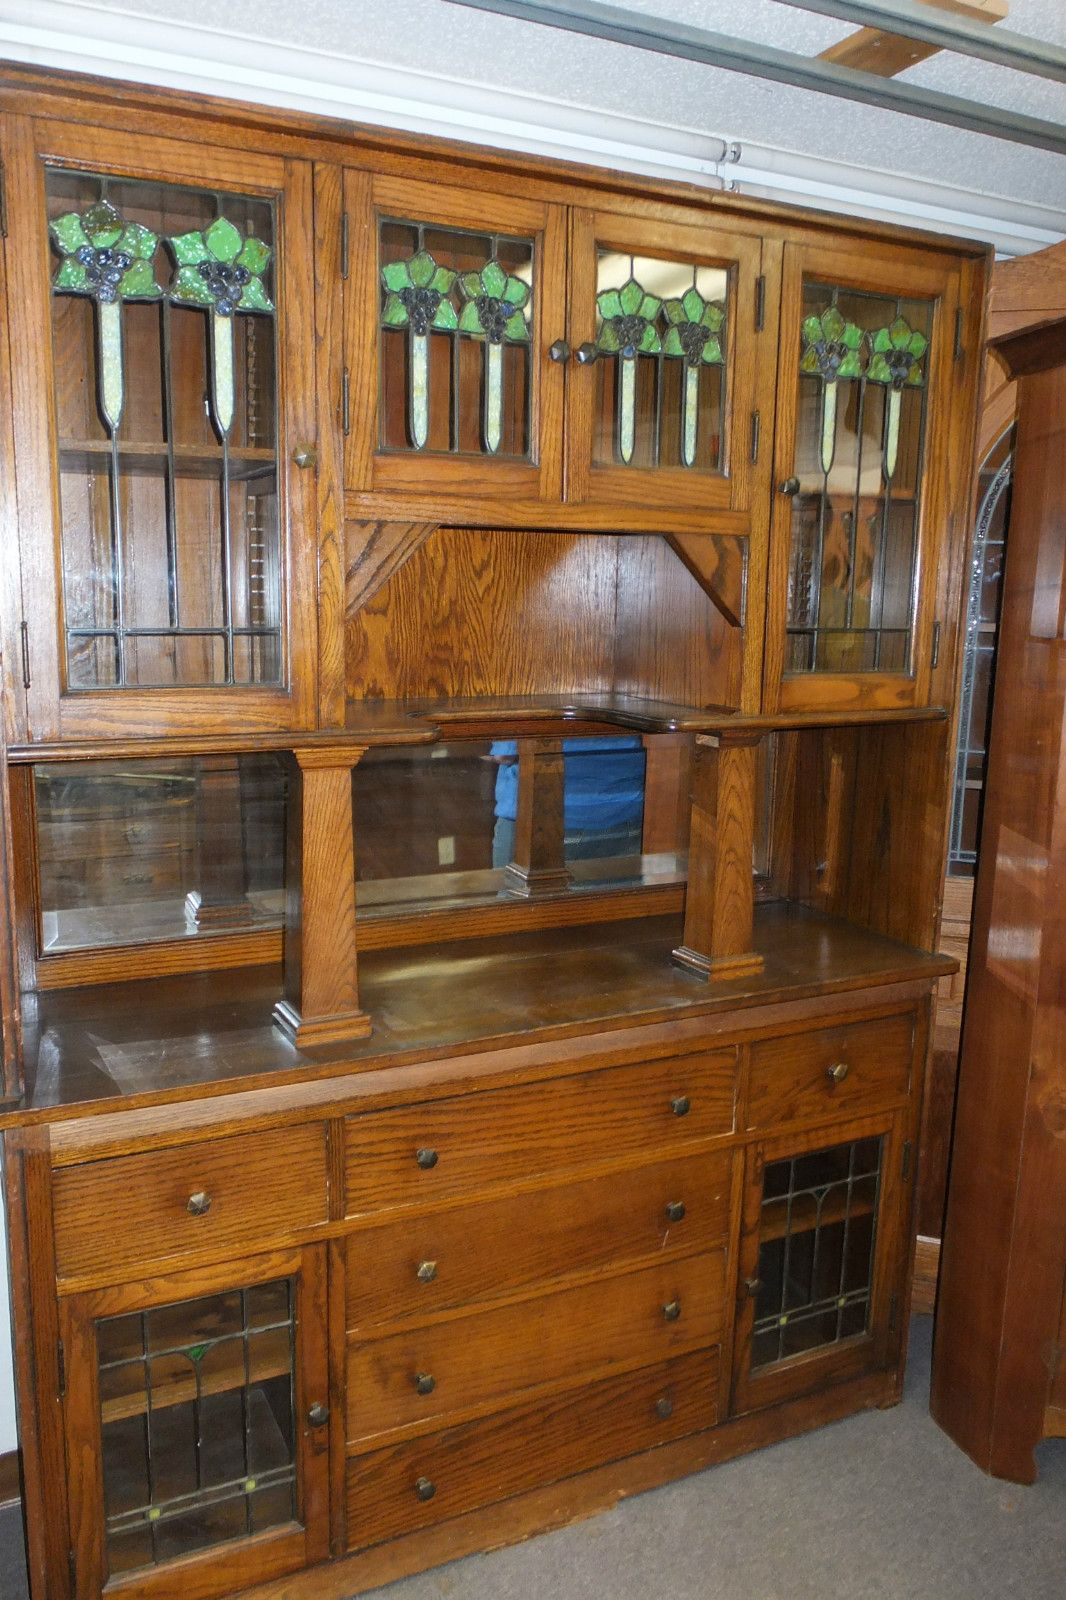 Built in china cabinet - Antique Built In China Cabinet